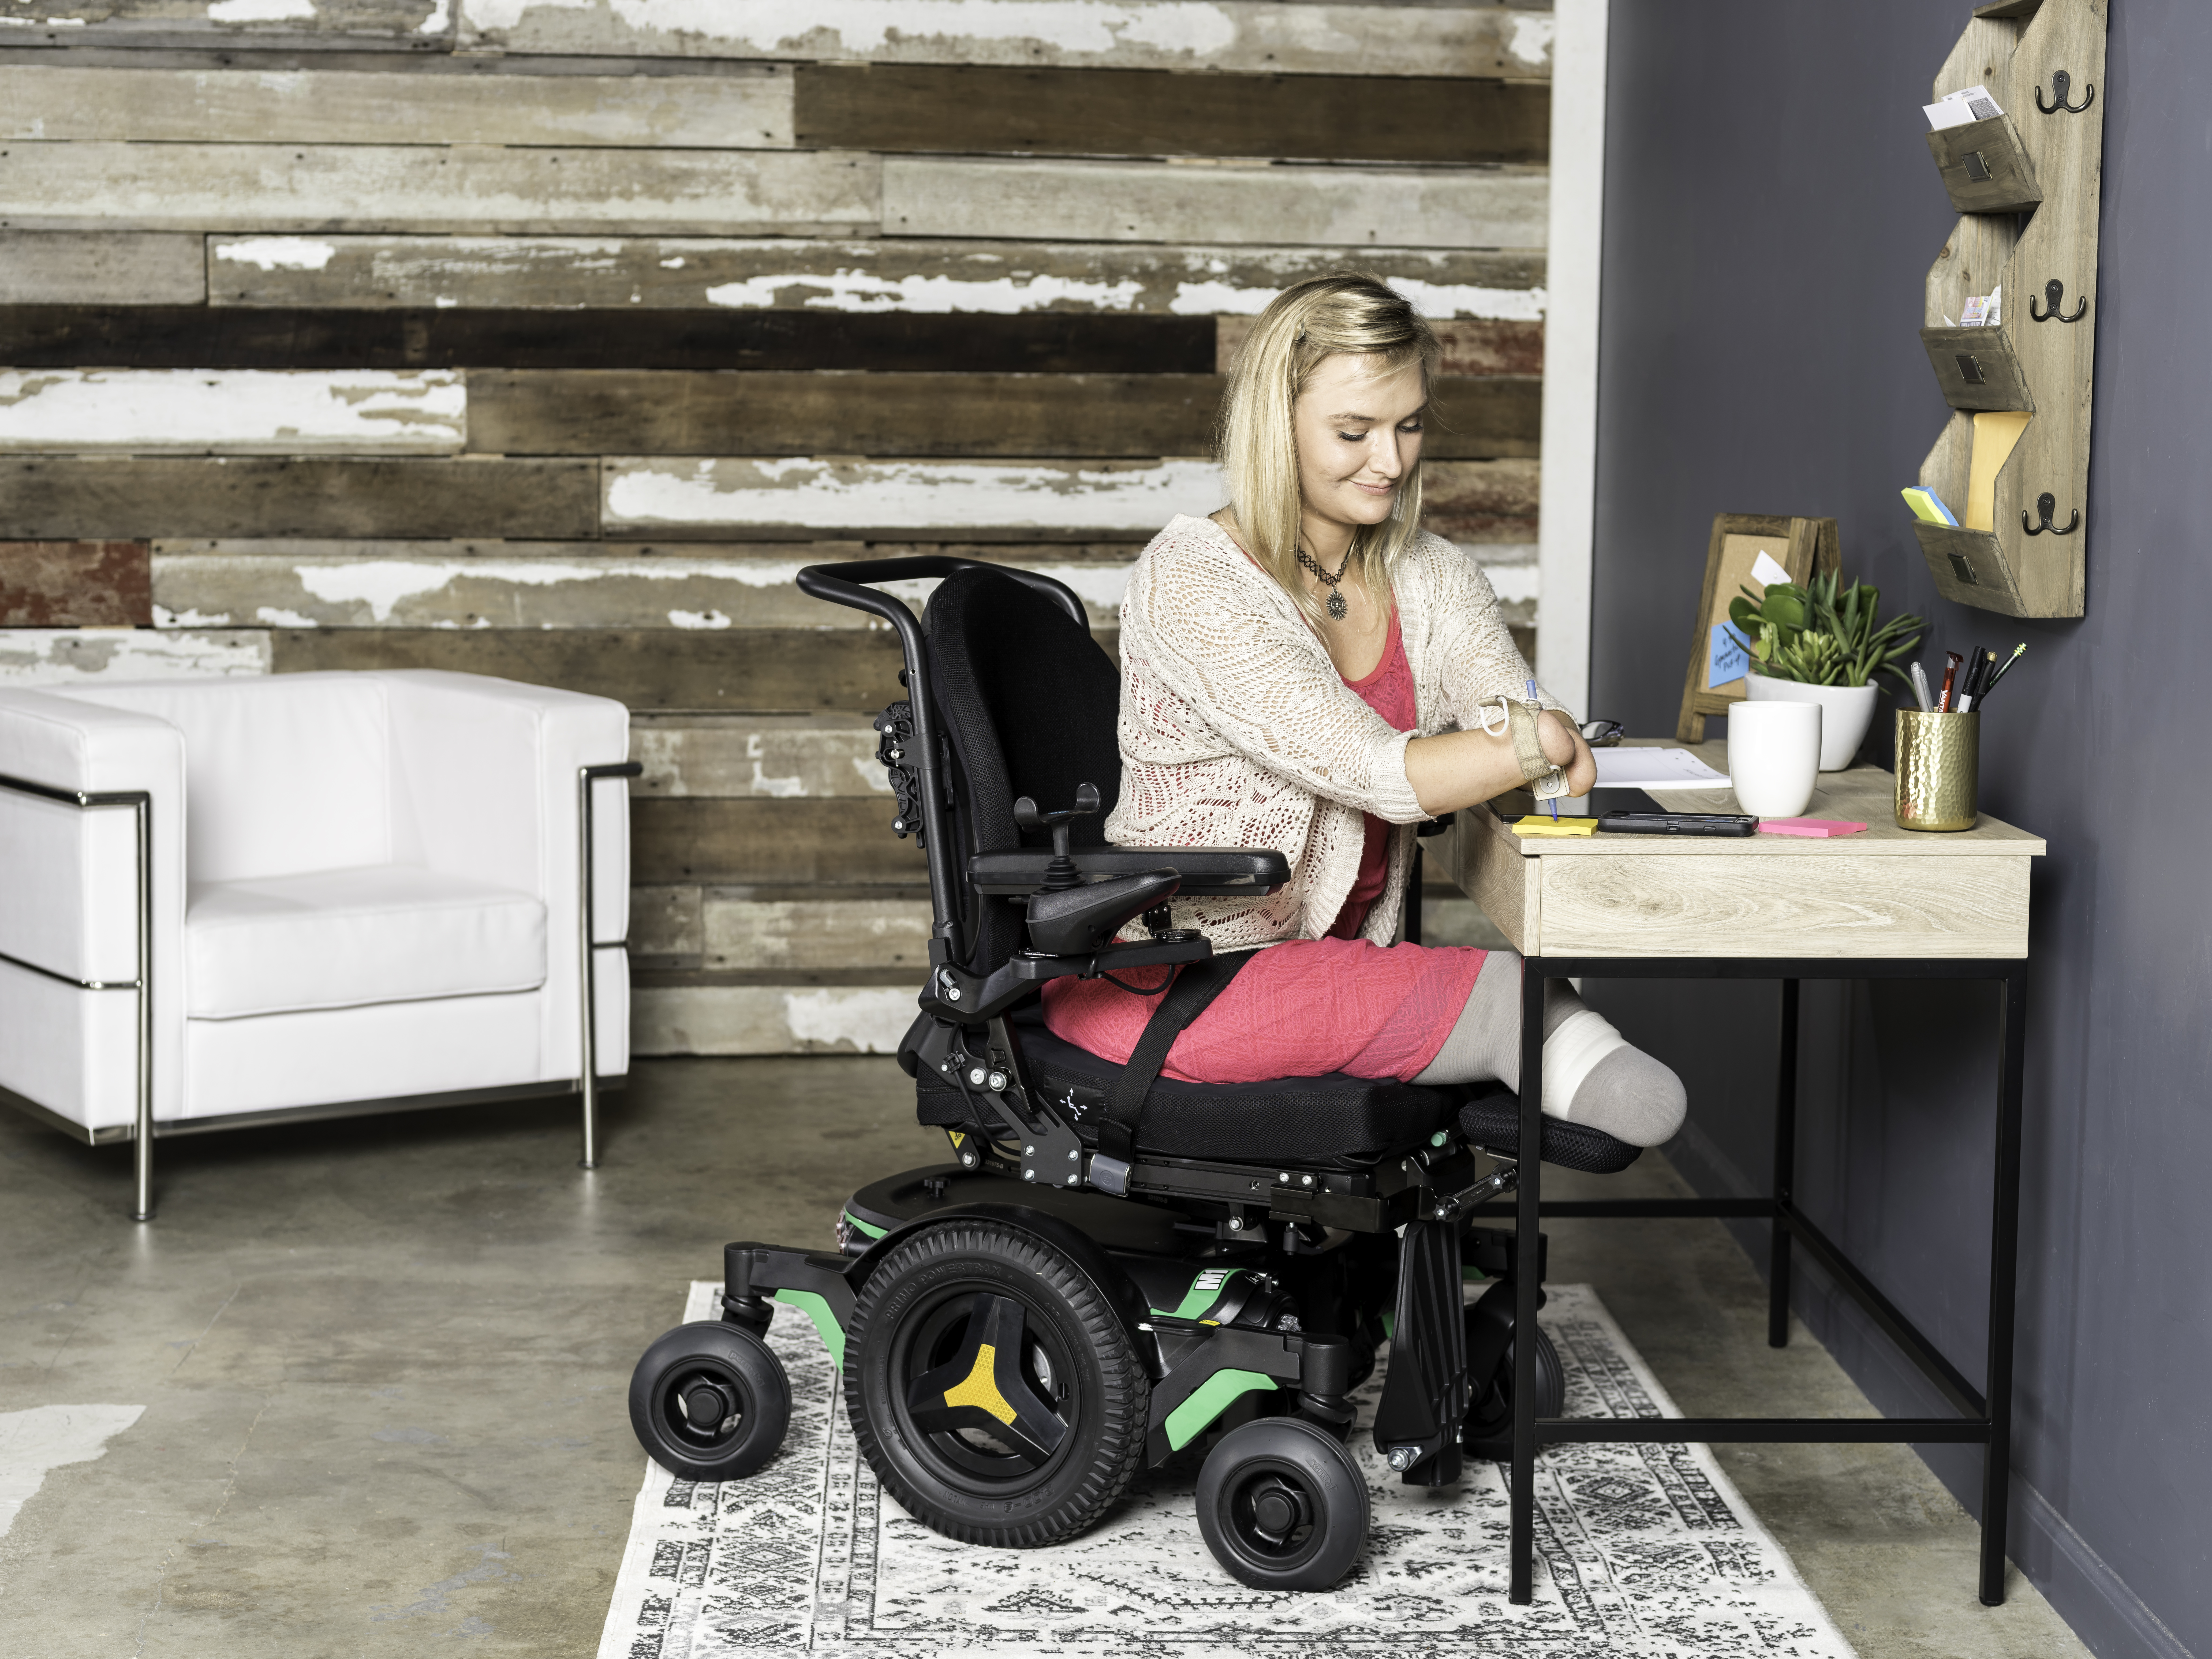 permobil m1 indoor powerchair clinical mobility solutions girl at desk